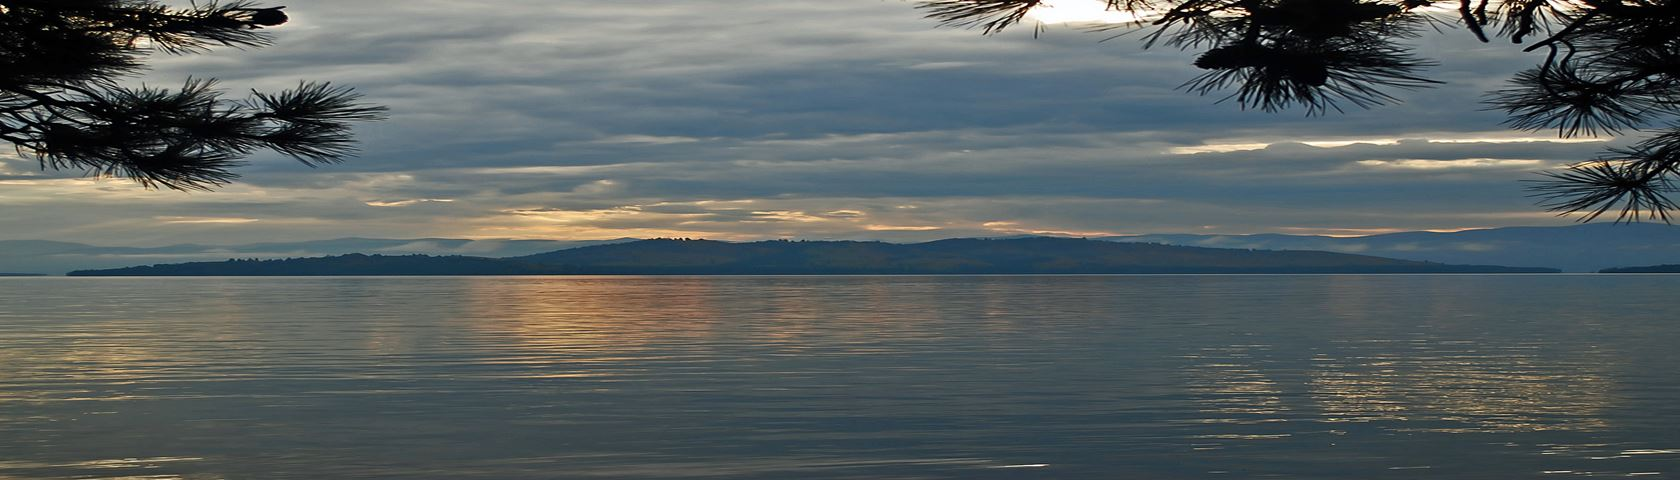 Arrowhead Lake 2